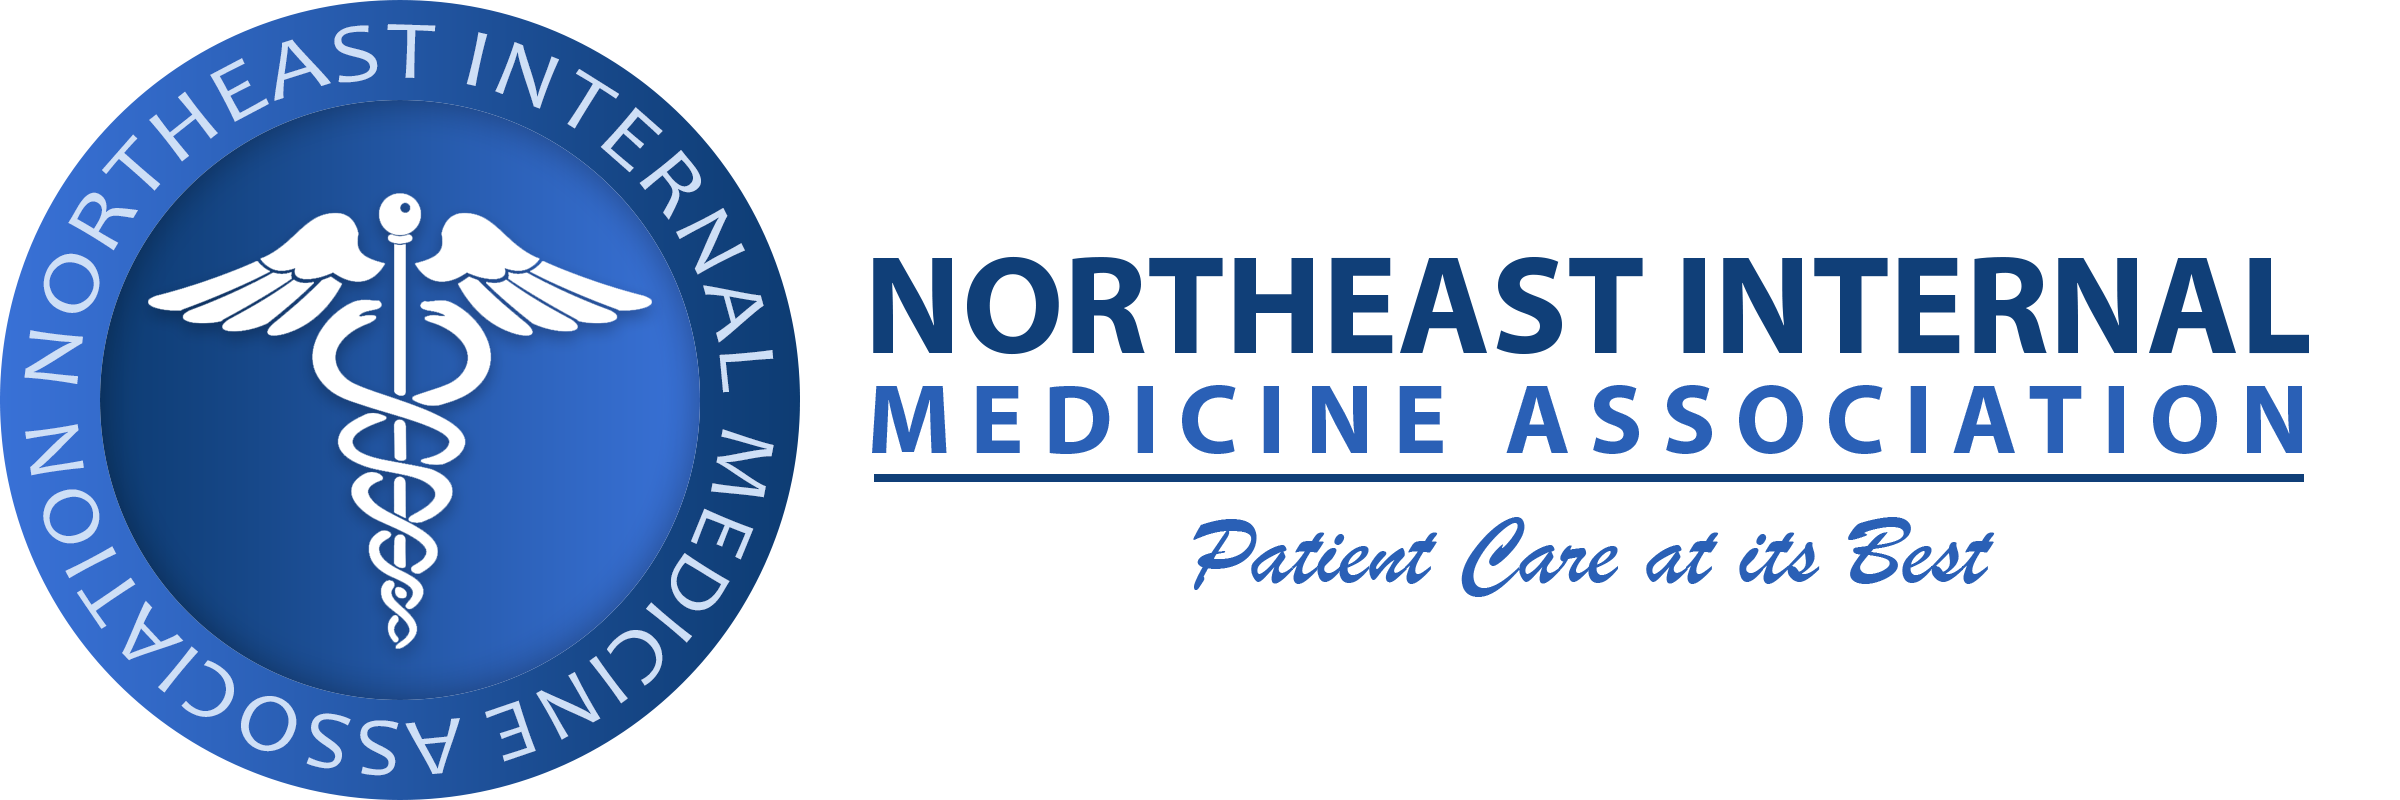 Northeast Internal Medicine